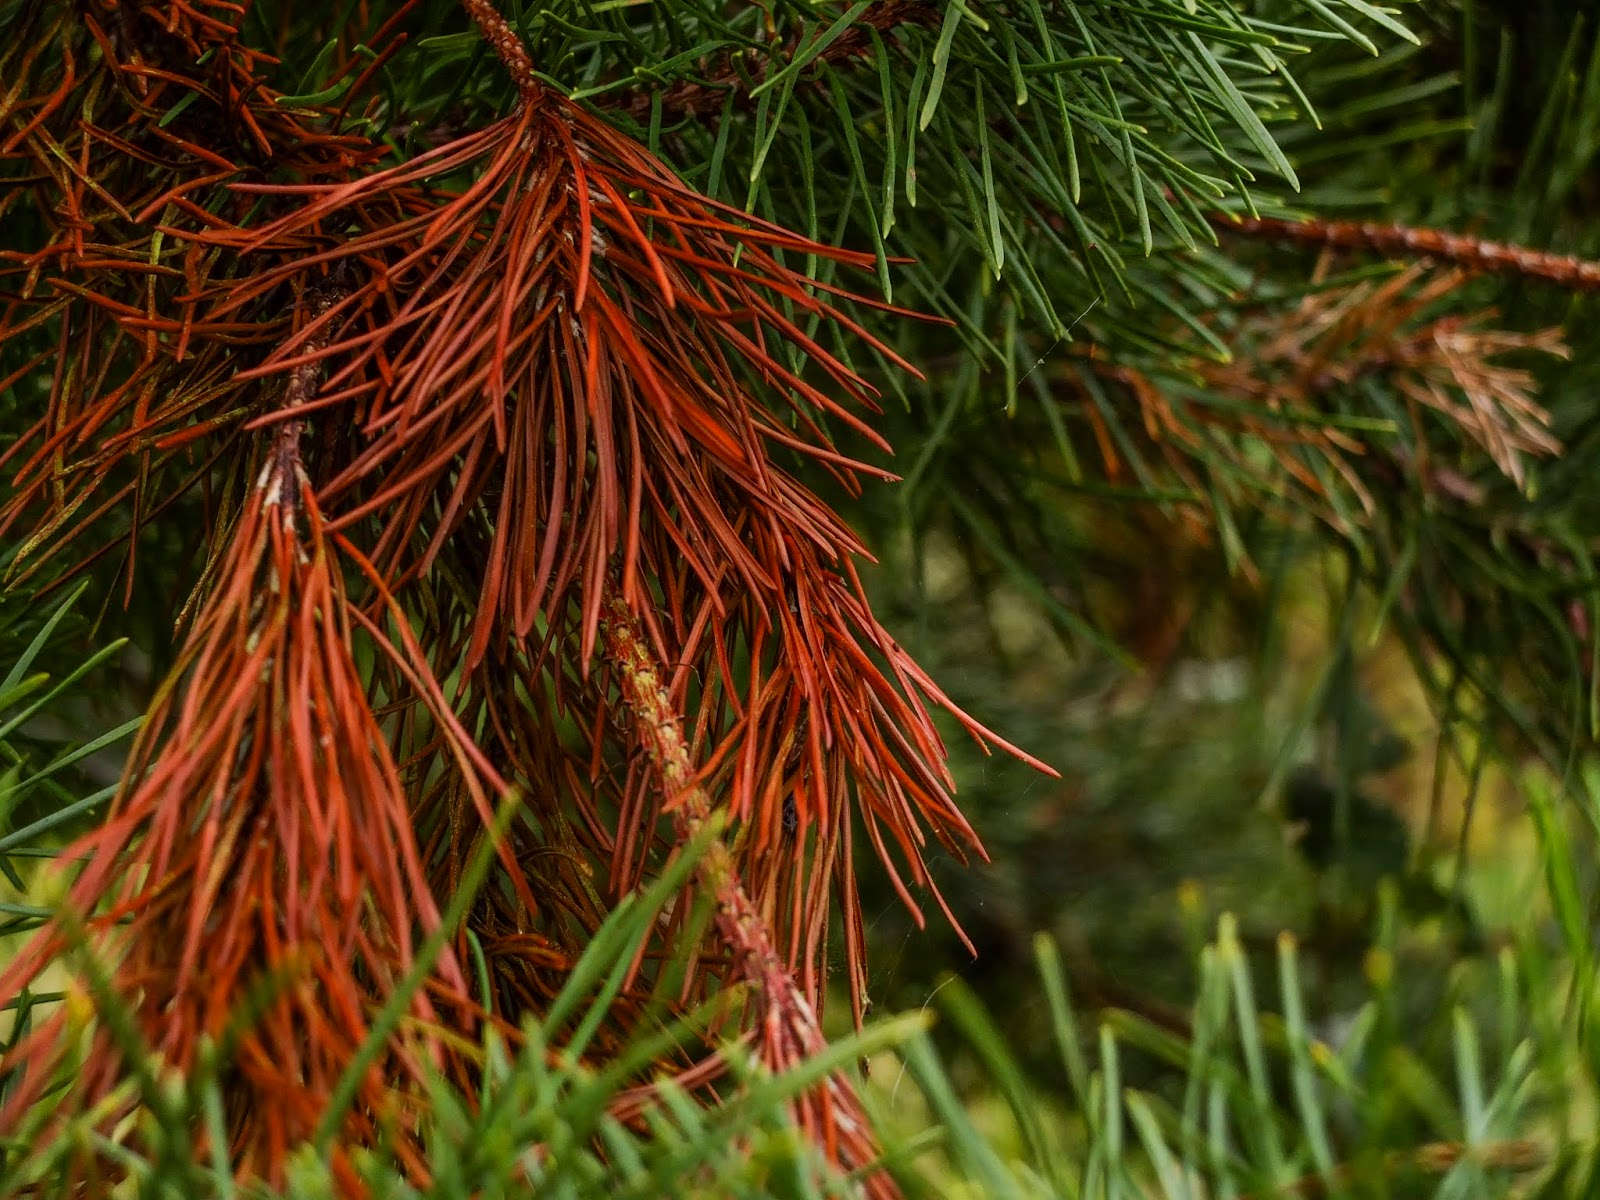 Brown and green pine needles.